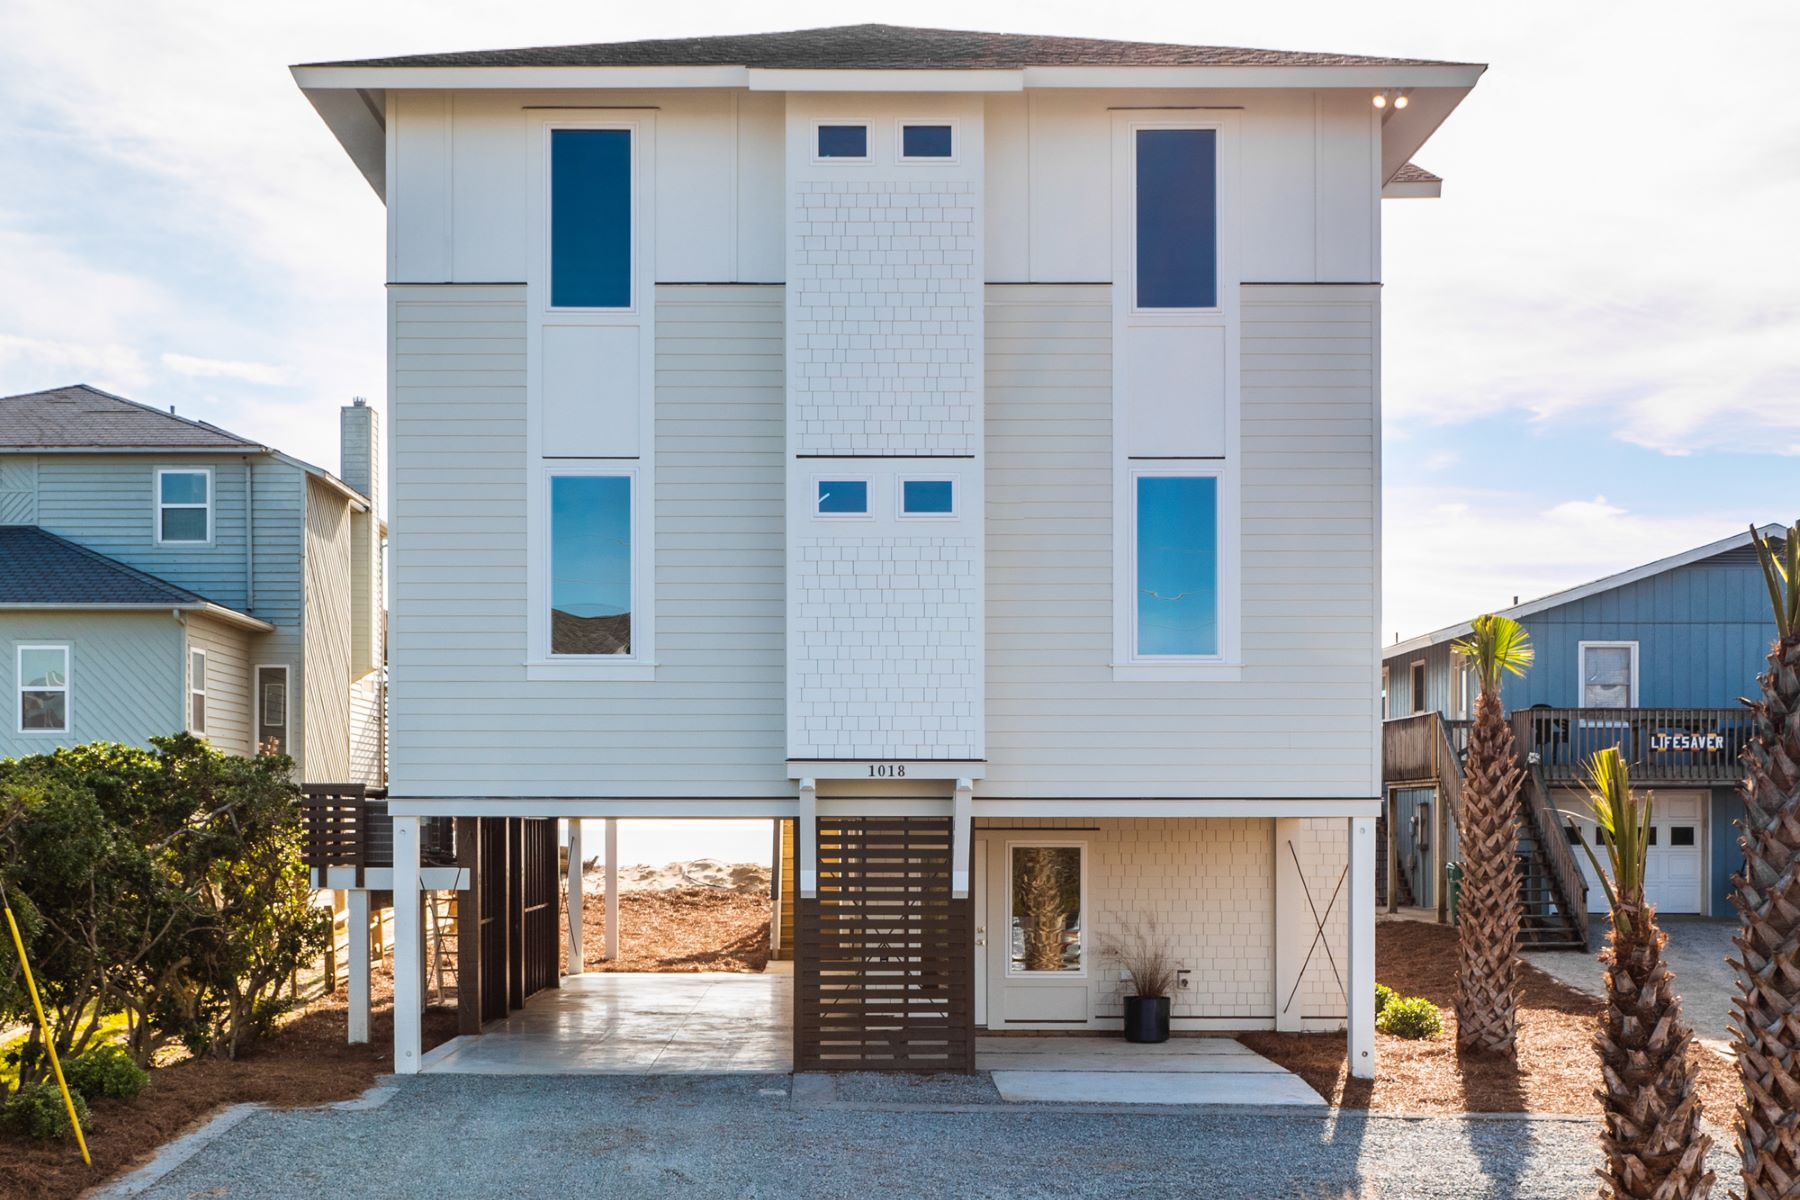 Single Family Home for Active at Stunning New Construction Oceanfront Home 1018 S Shore Drive Surf City, North Carolina 28445 United States